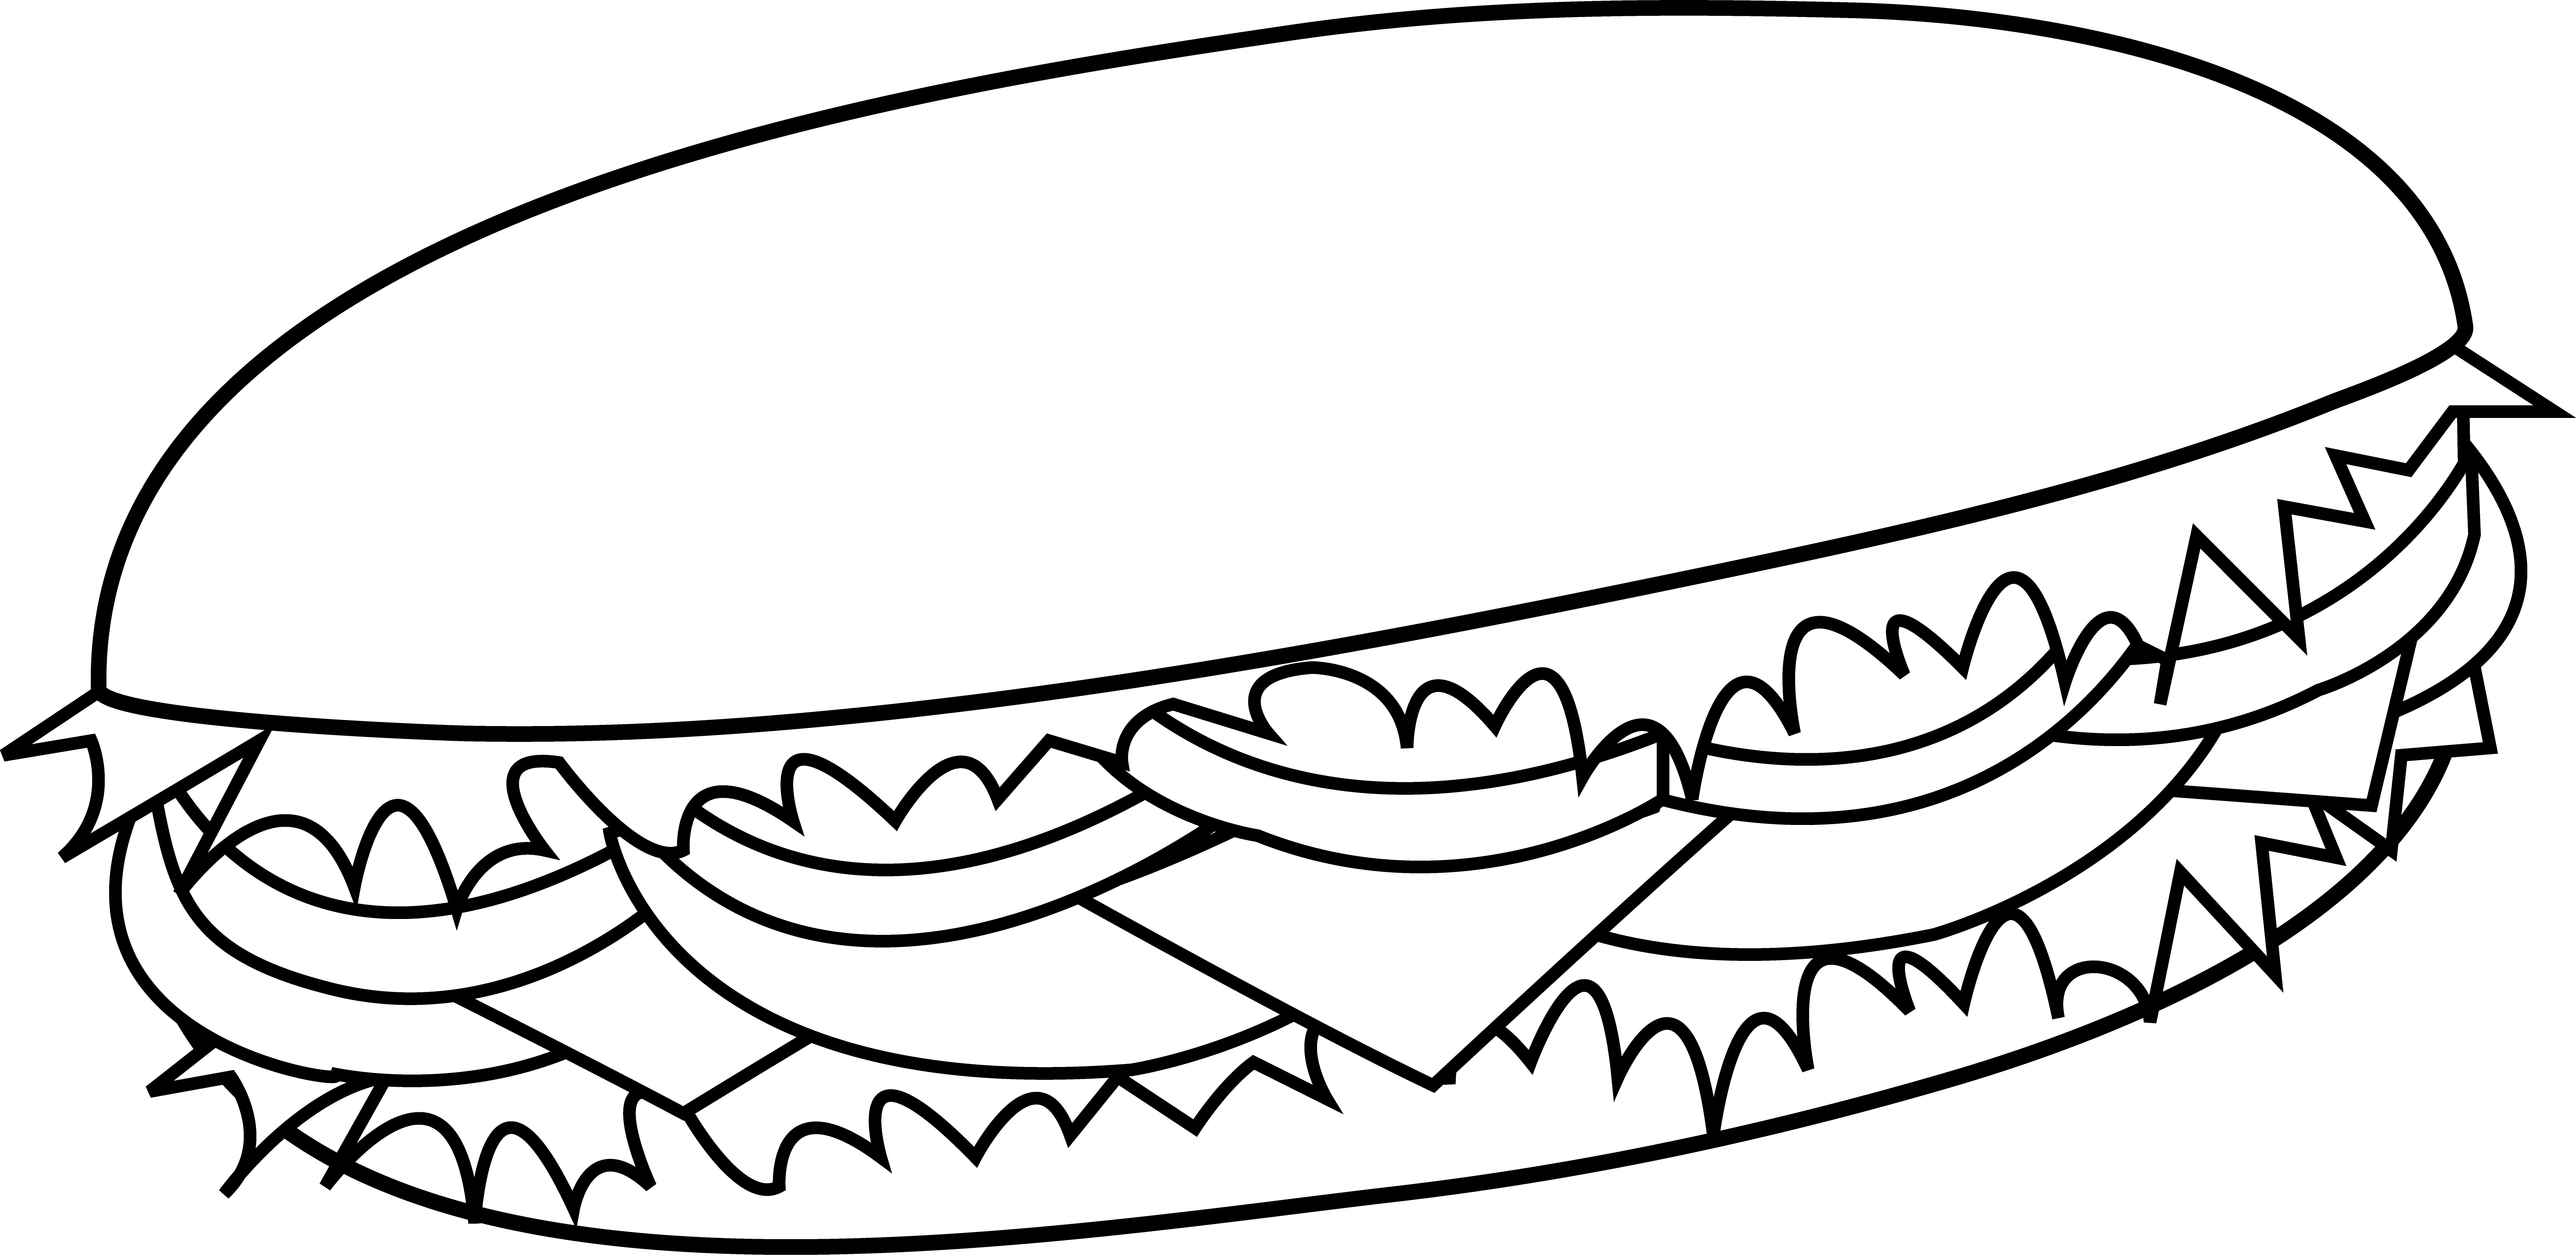 Vector sandwich black and white. Simple drawing clipart panda